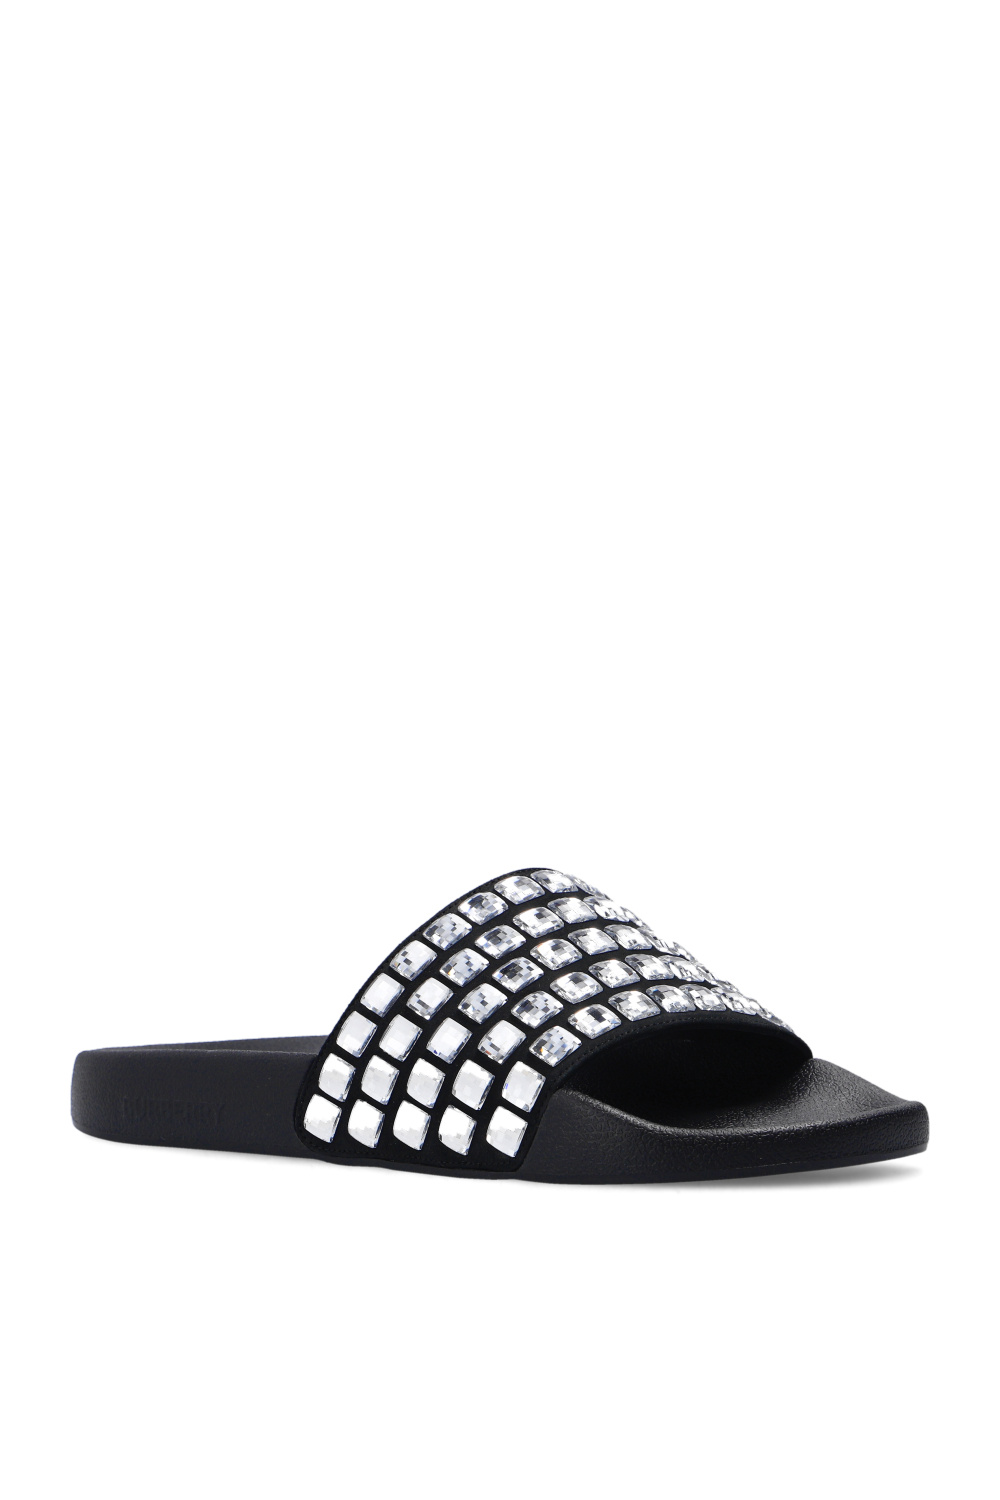 Burberry Slides with crystals